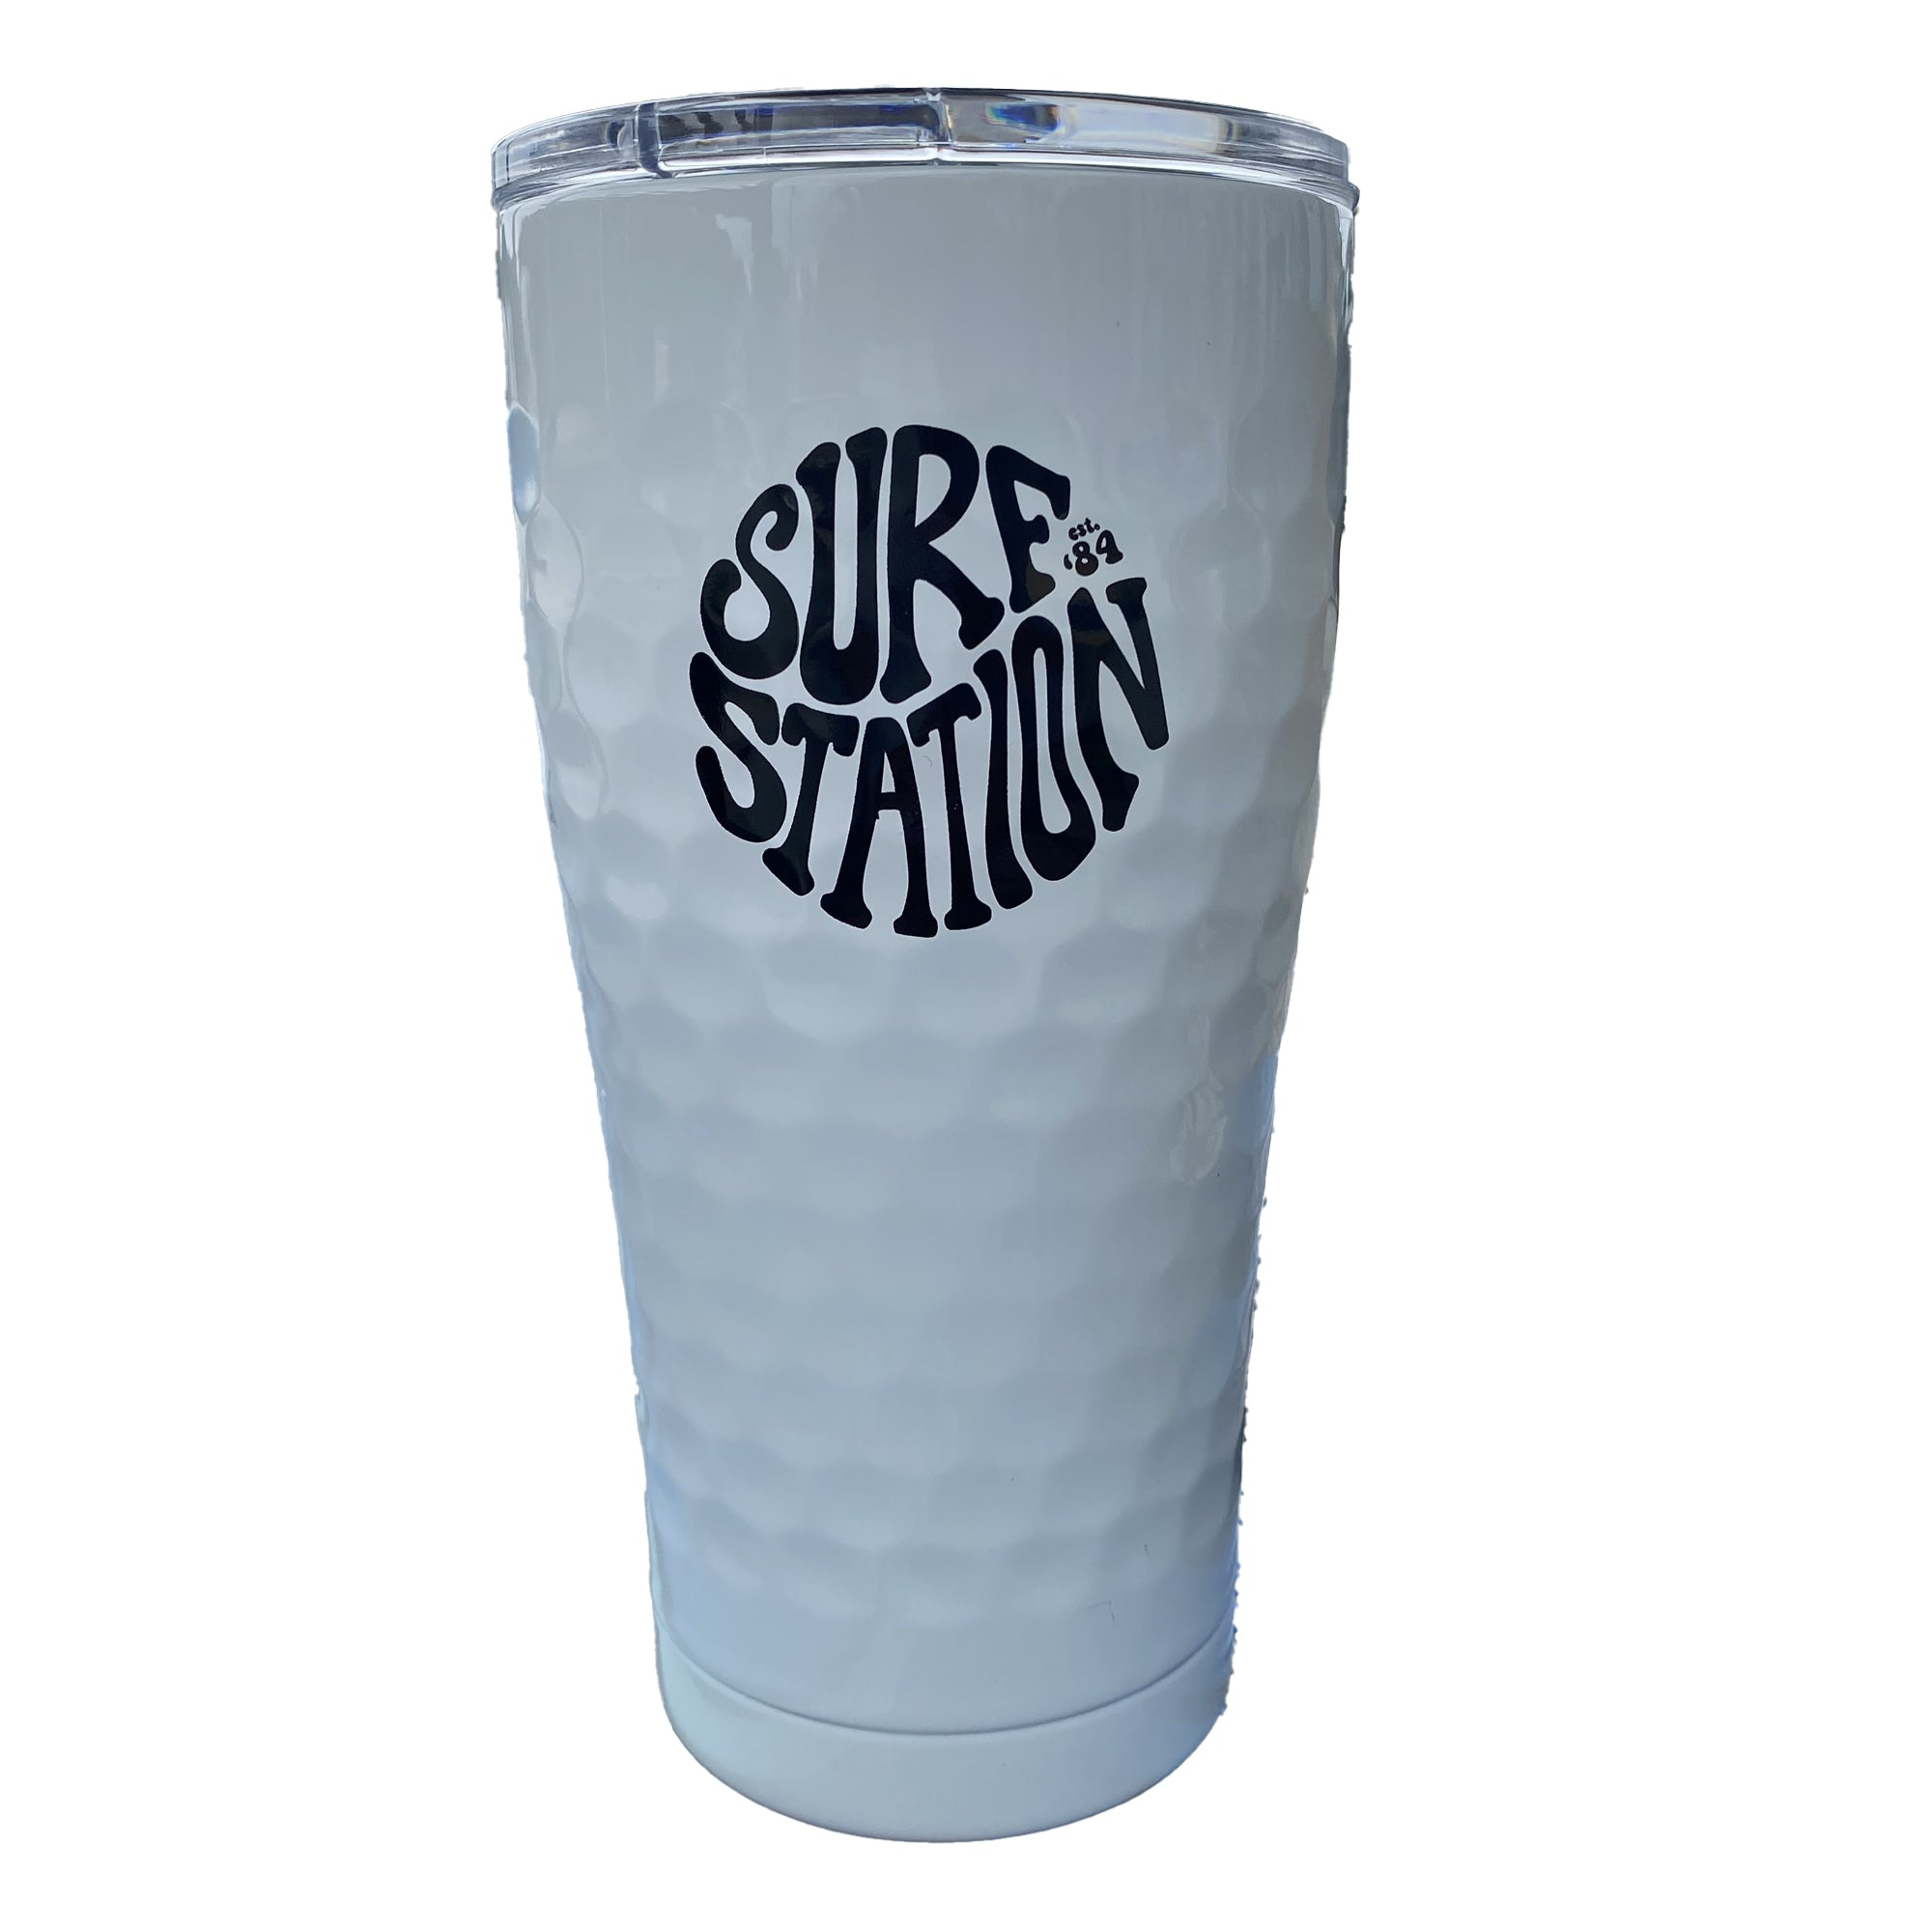 Surf Station SIC 20oz Tumbler - Dimpled Golf